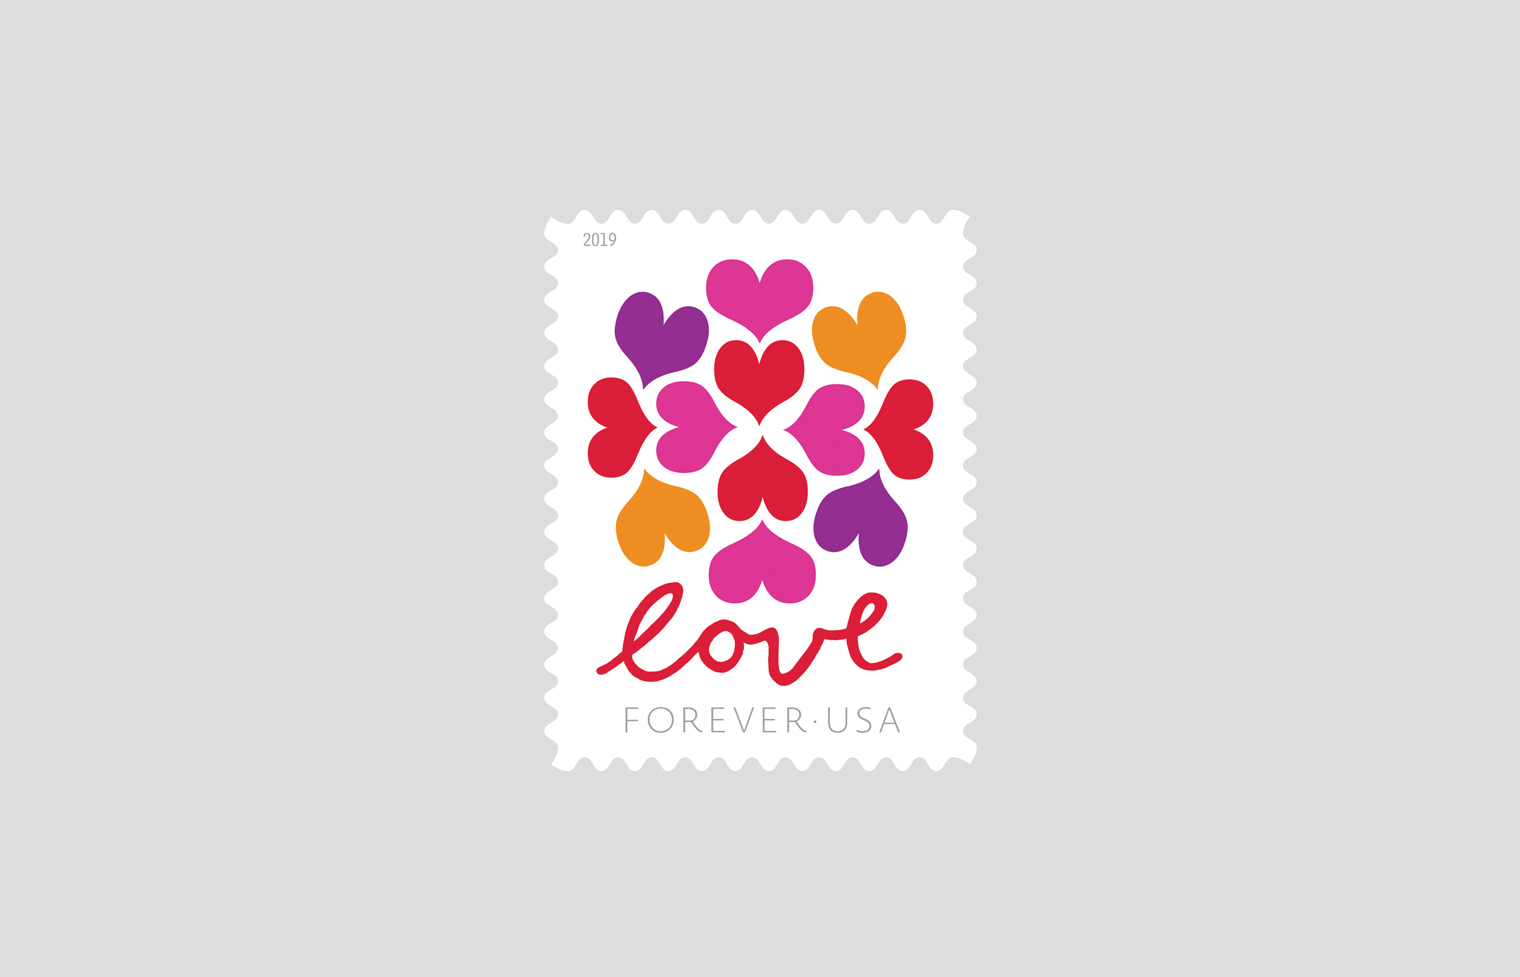 Heart Blossom Love Stamp